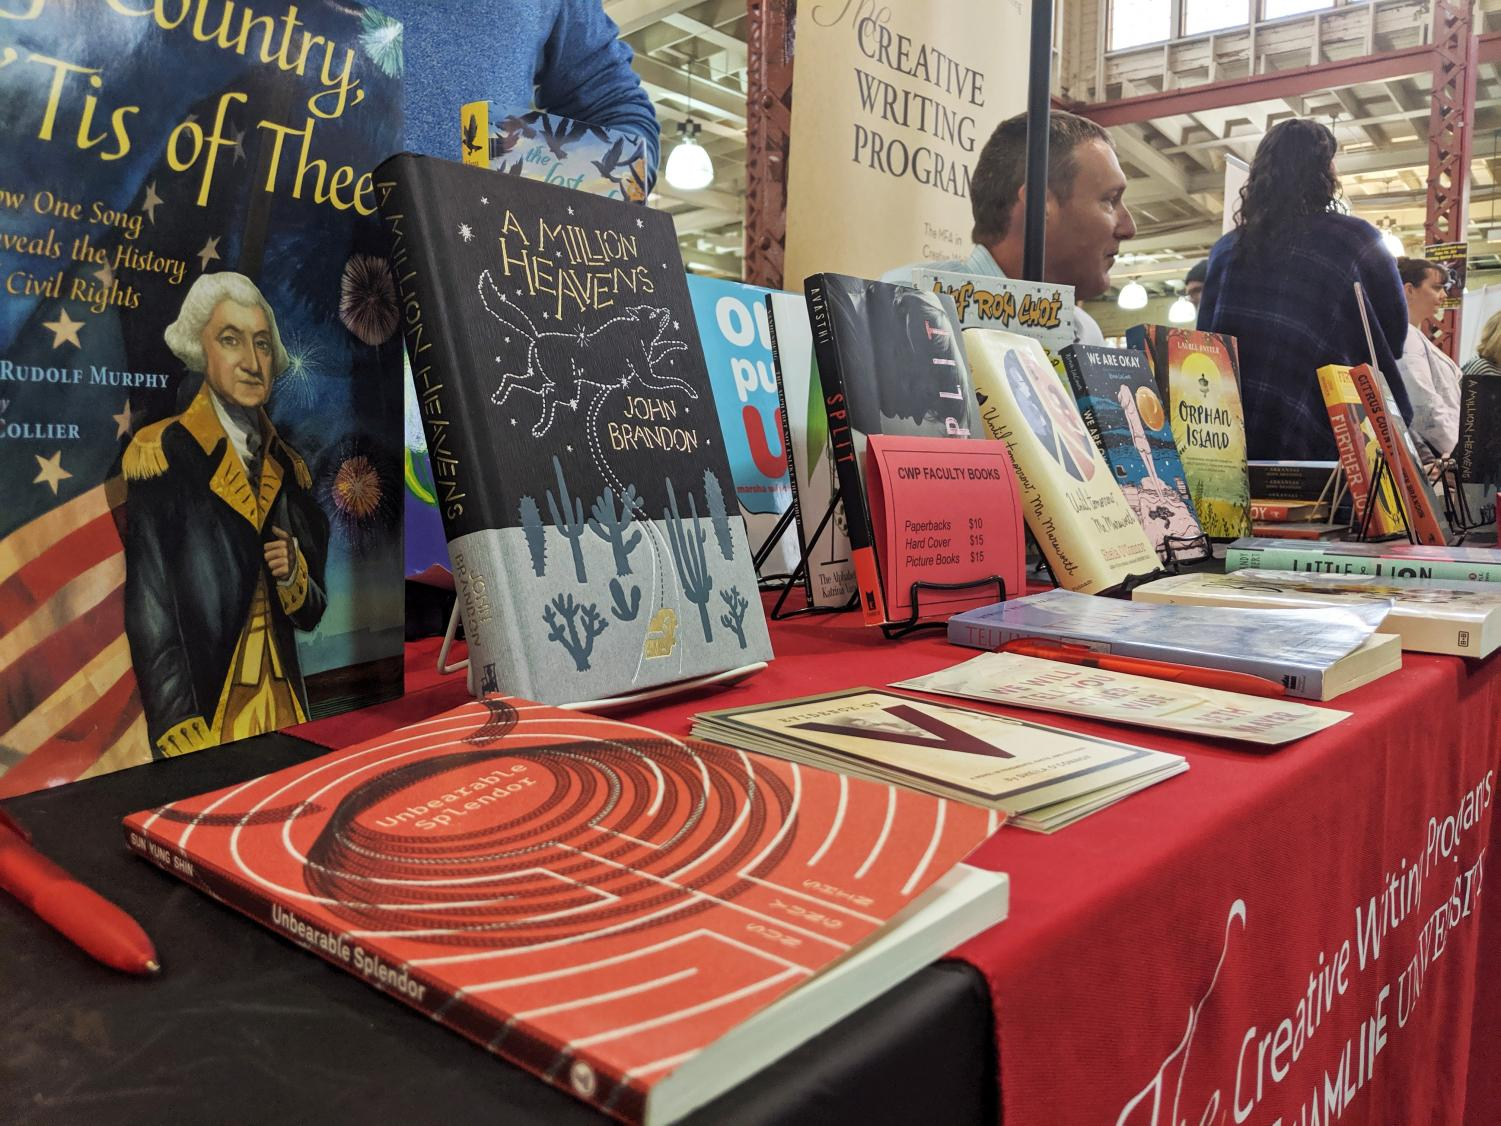 Hamline professor and author John Brandon signed books at Hamline's booth during the 2019 Twin Cities Book Festival on Oct. 12.